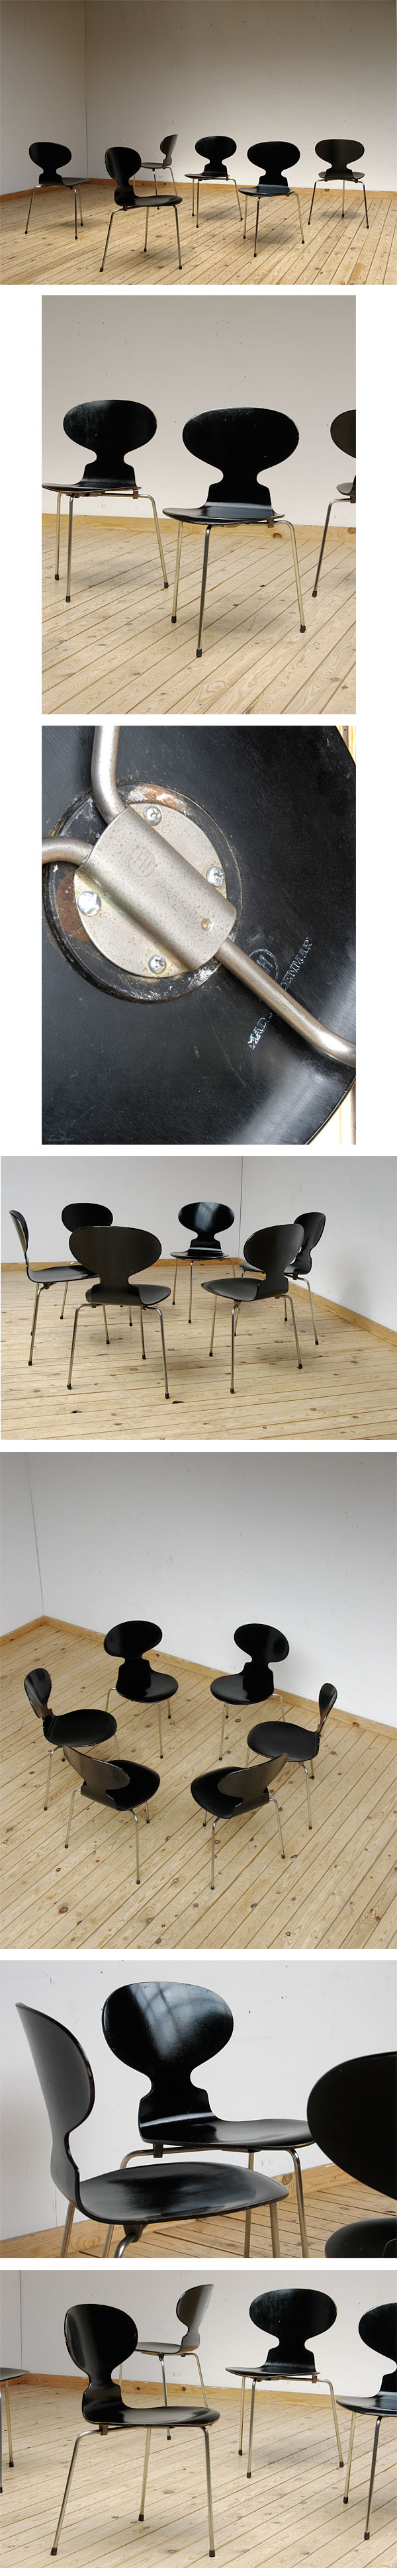 City furniture 6 chaises ant arne jacobsen fritz hansen for Chaise arne jacobsen